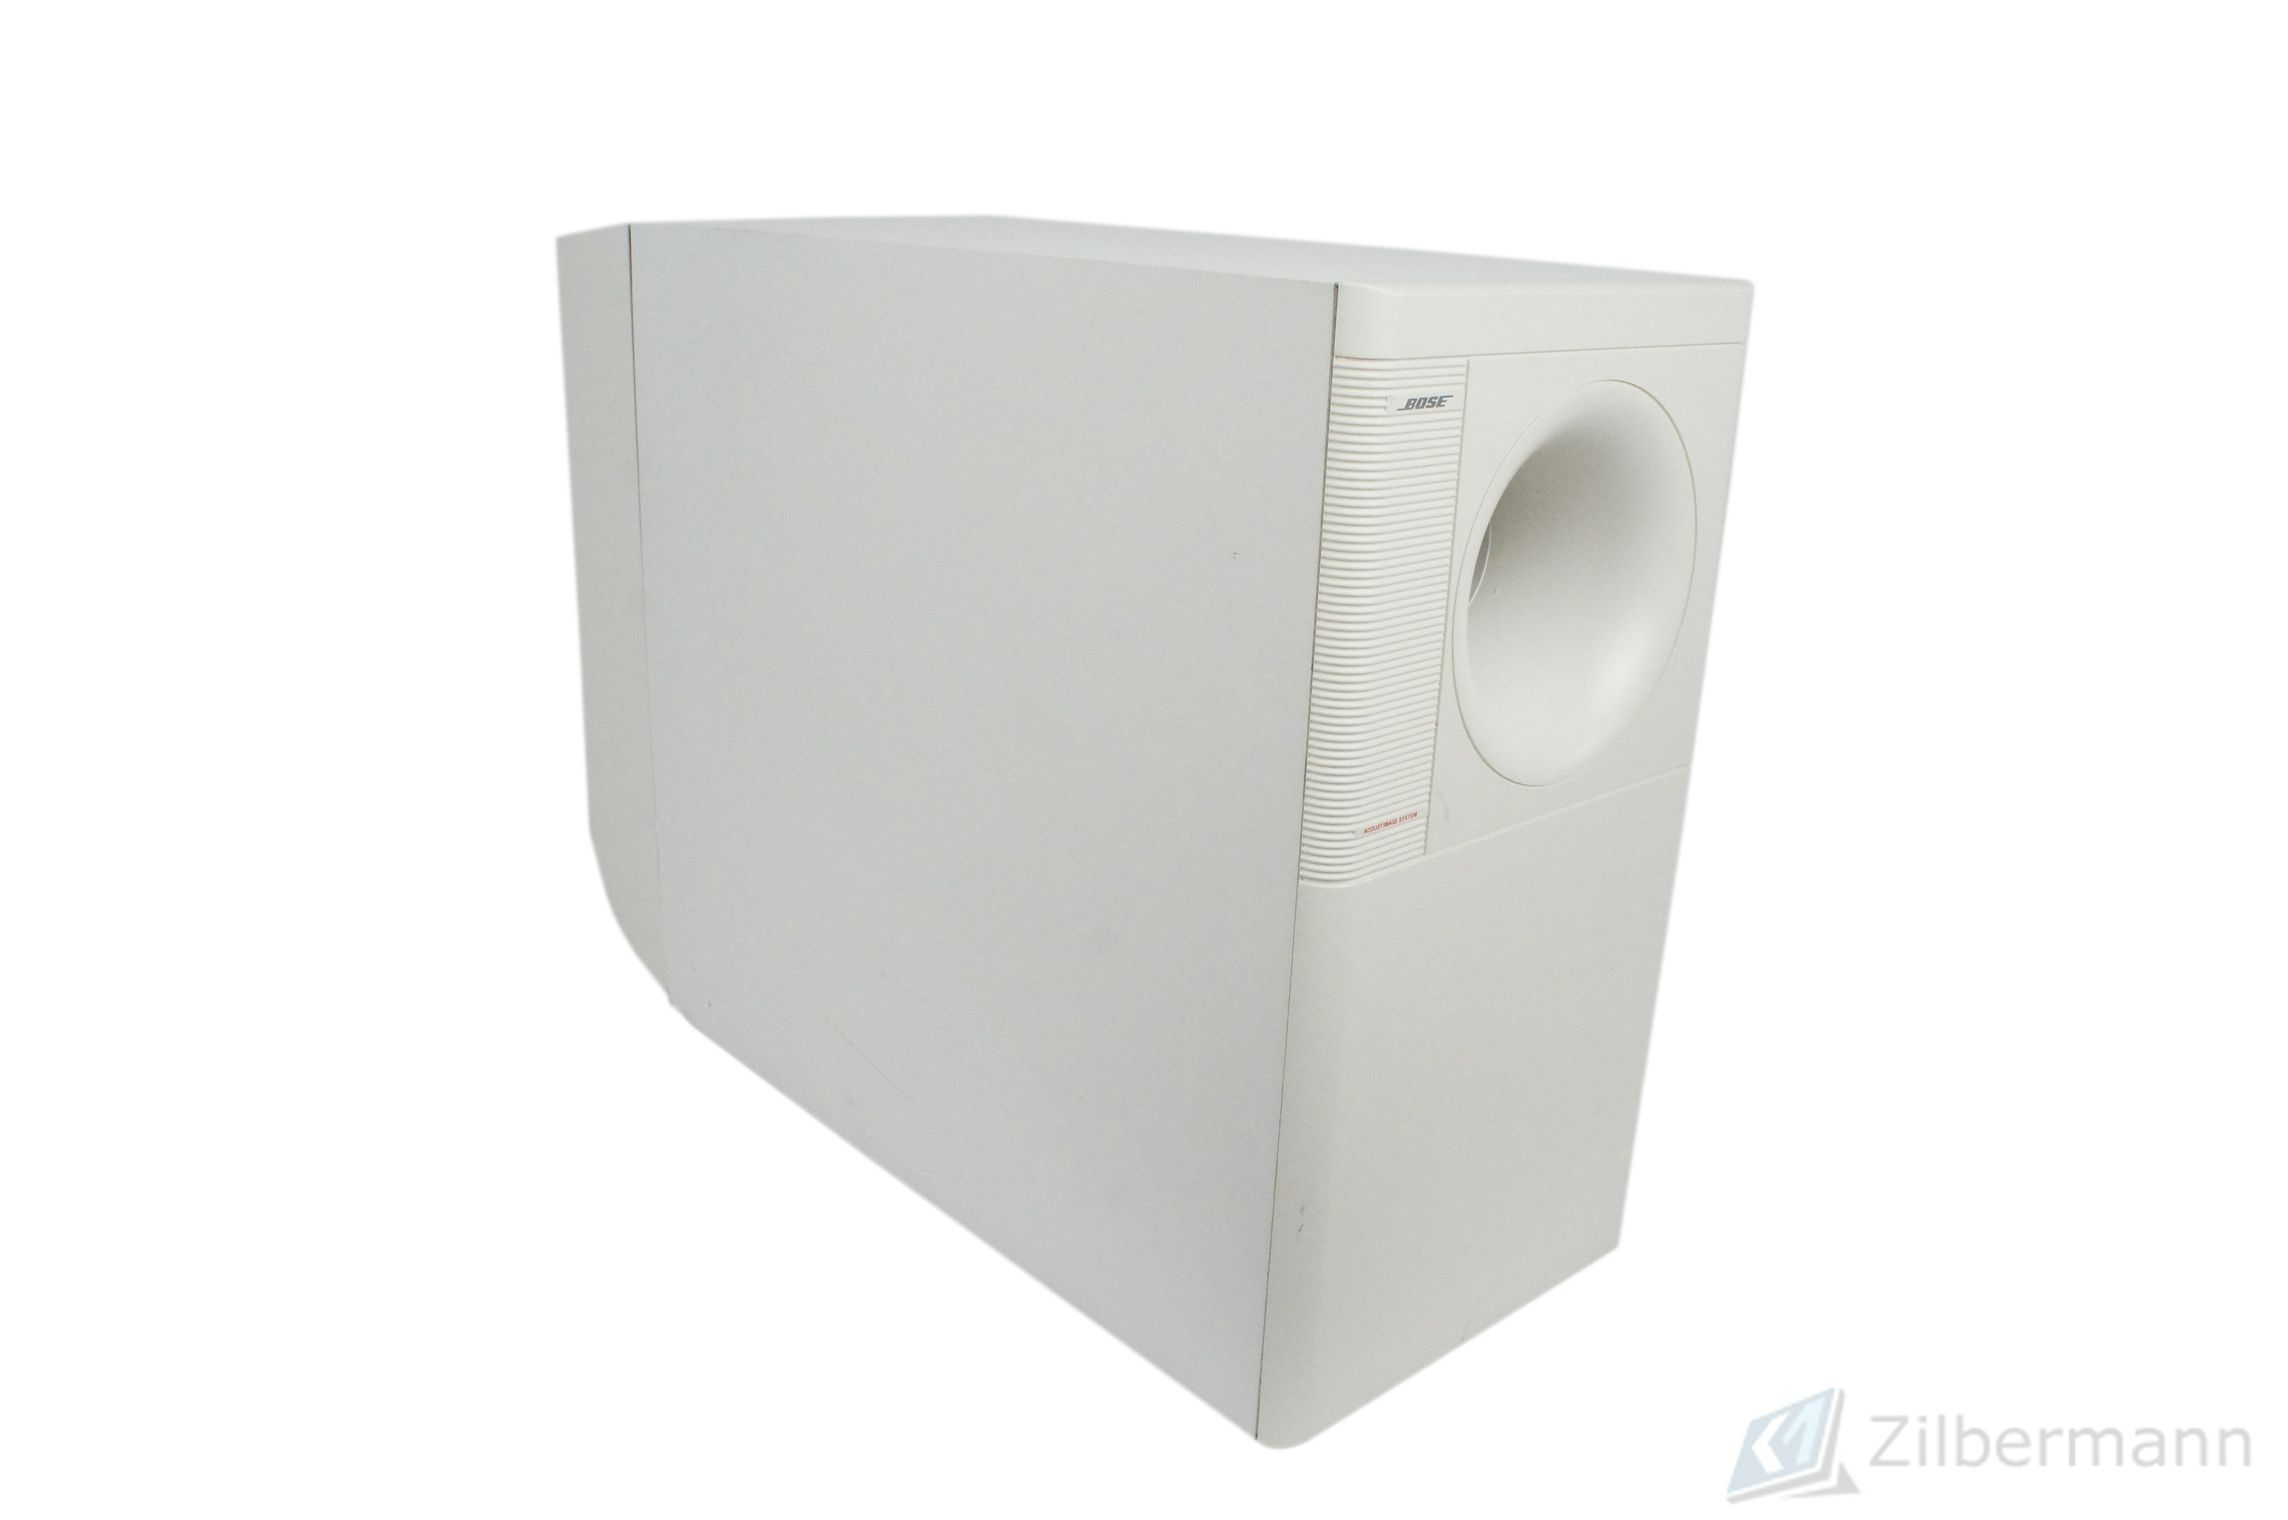 Bose_Powered_Acoustimass_8_Subwoofer_Weiss